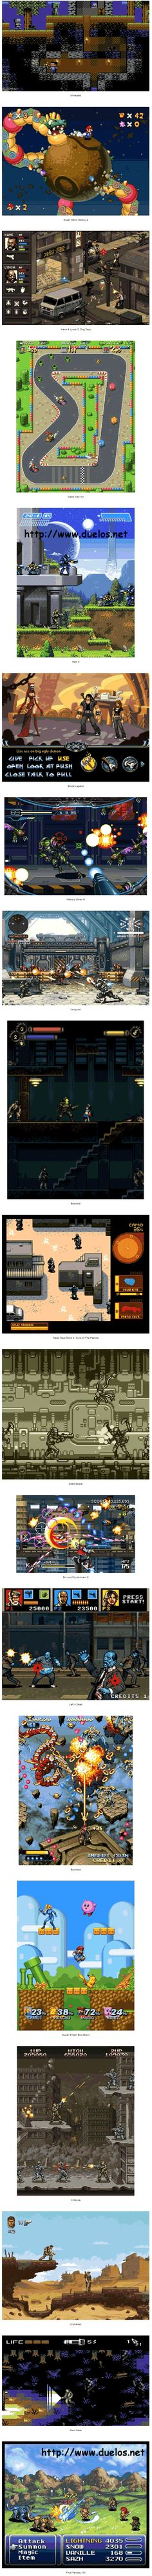 Current games with old graphics | Things for Geeks